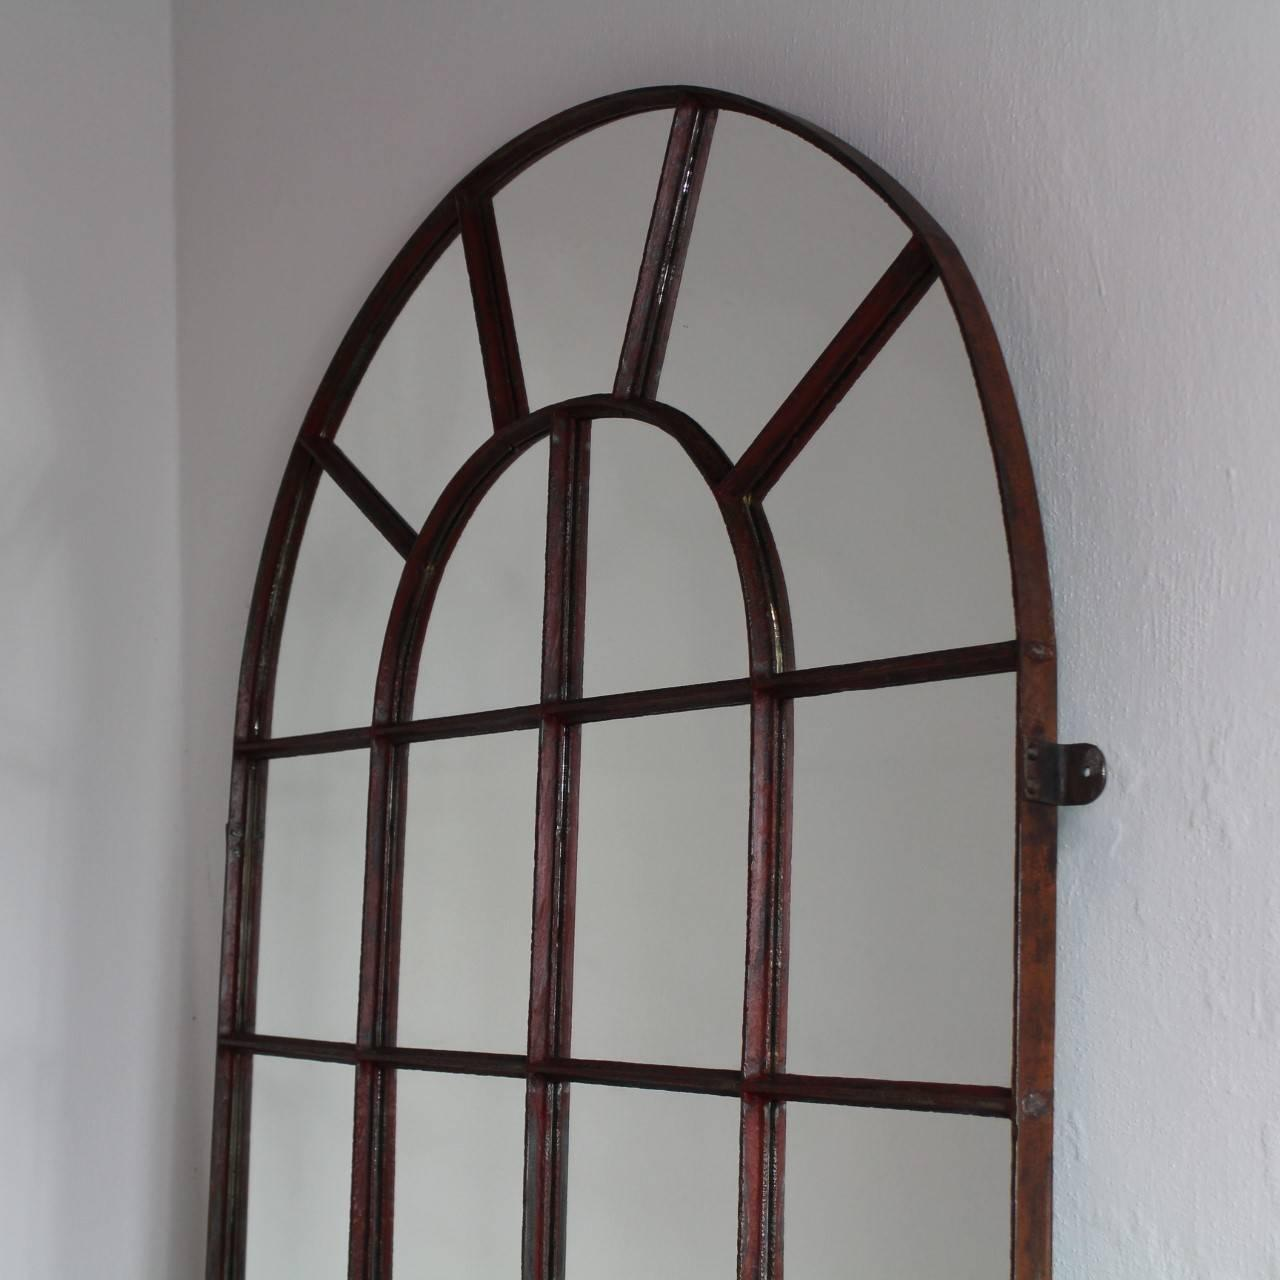 19th century industrial iron window frame mirror 2 pieces for Window mirrors for sale